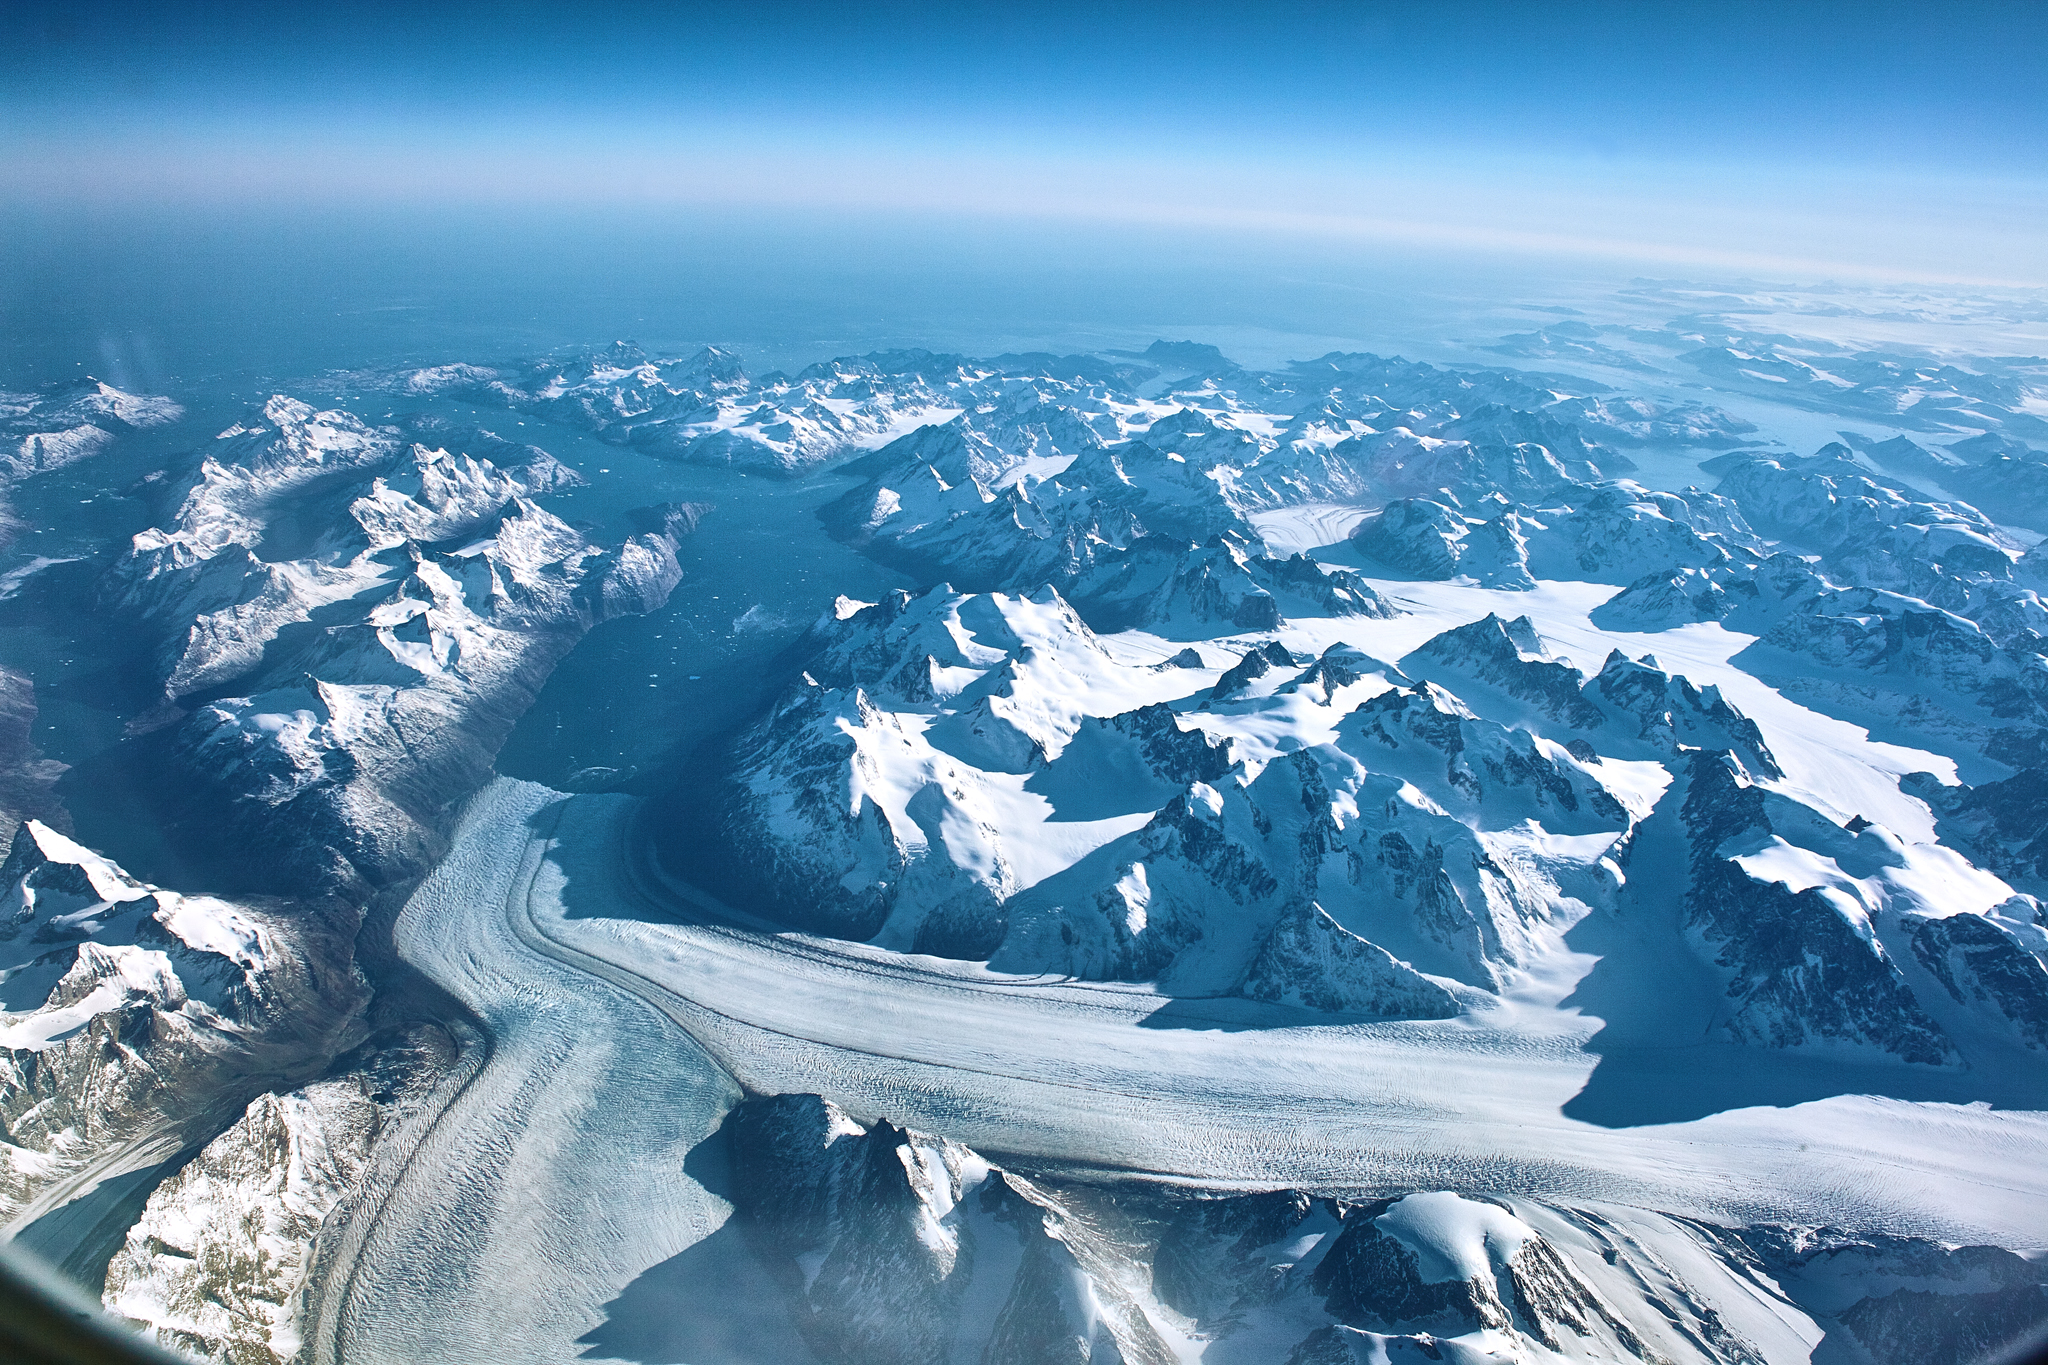 Somewhere very high over Greenland, the curvature of the earth is very visible.